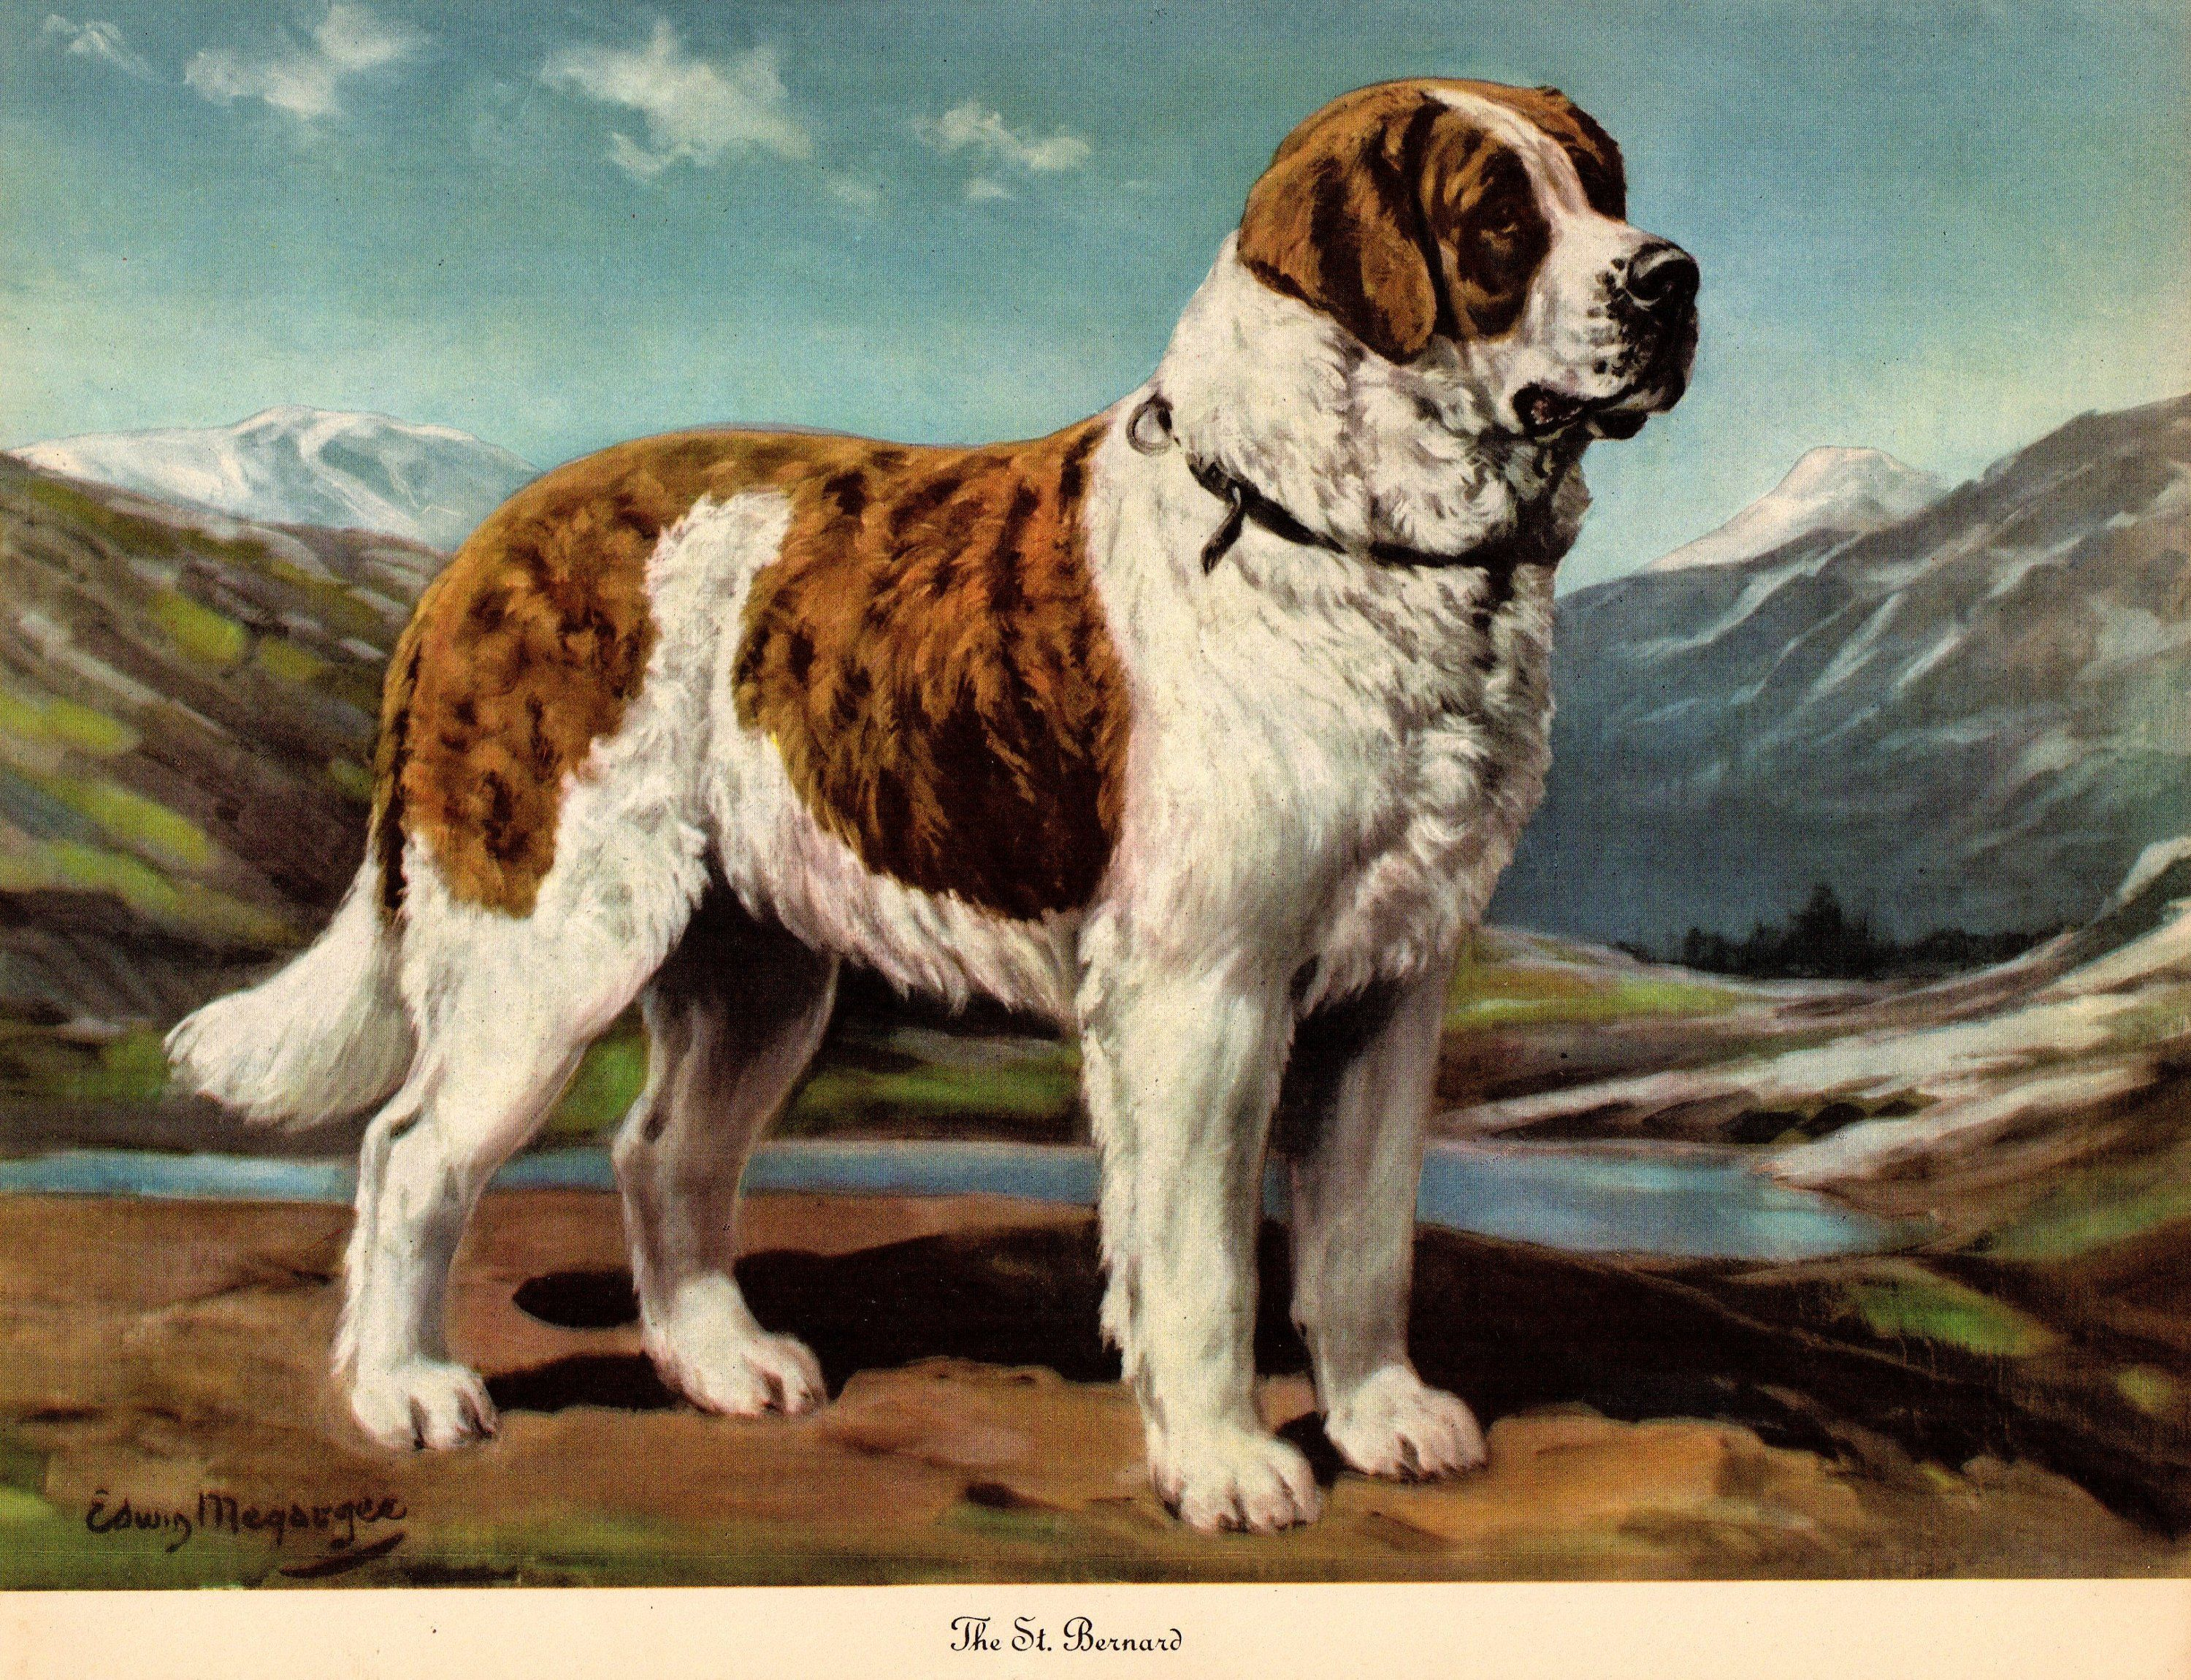 1942 Antique St Bernard Dog Print Vintage Megargee Pet Art Etsy Dog Print Art St Bernard Dogs Dog Art